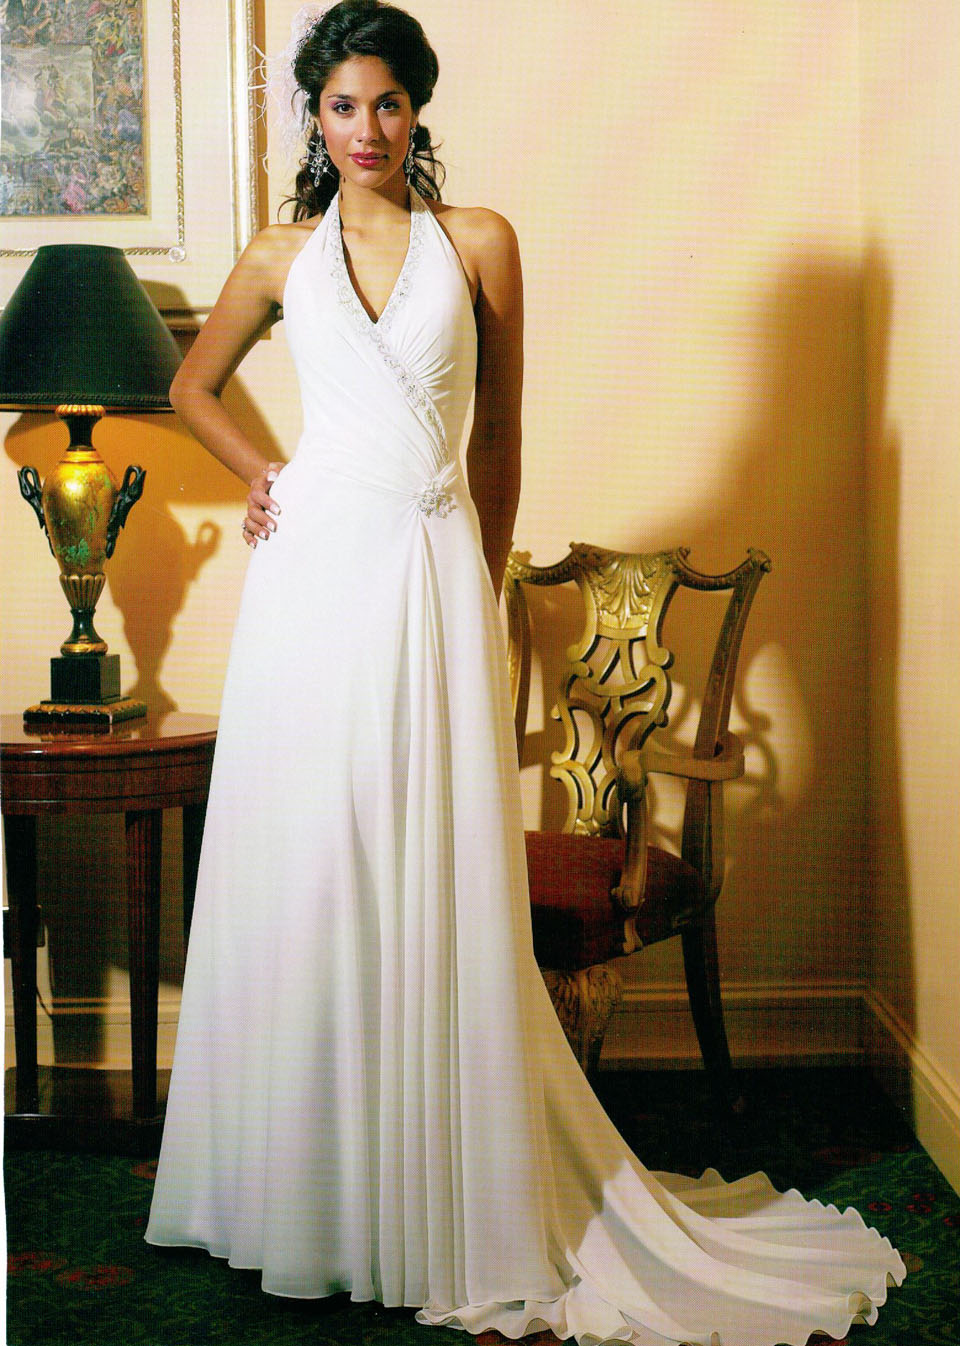 renting wedding dresses in las vegas rental wedding dresses Renting Wedding Dresses In Las Vegas 67